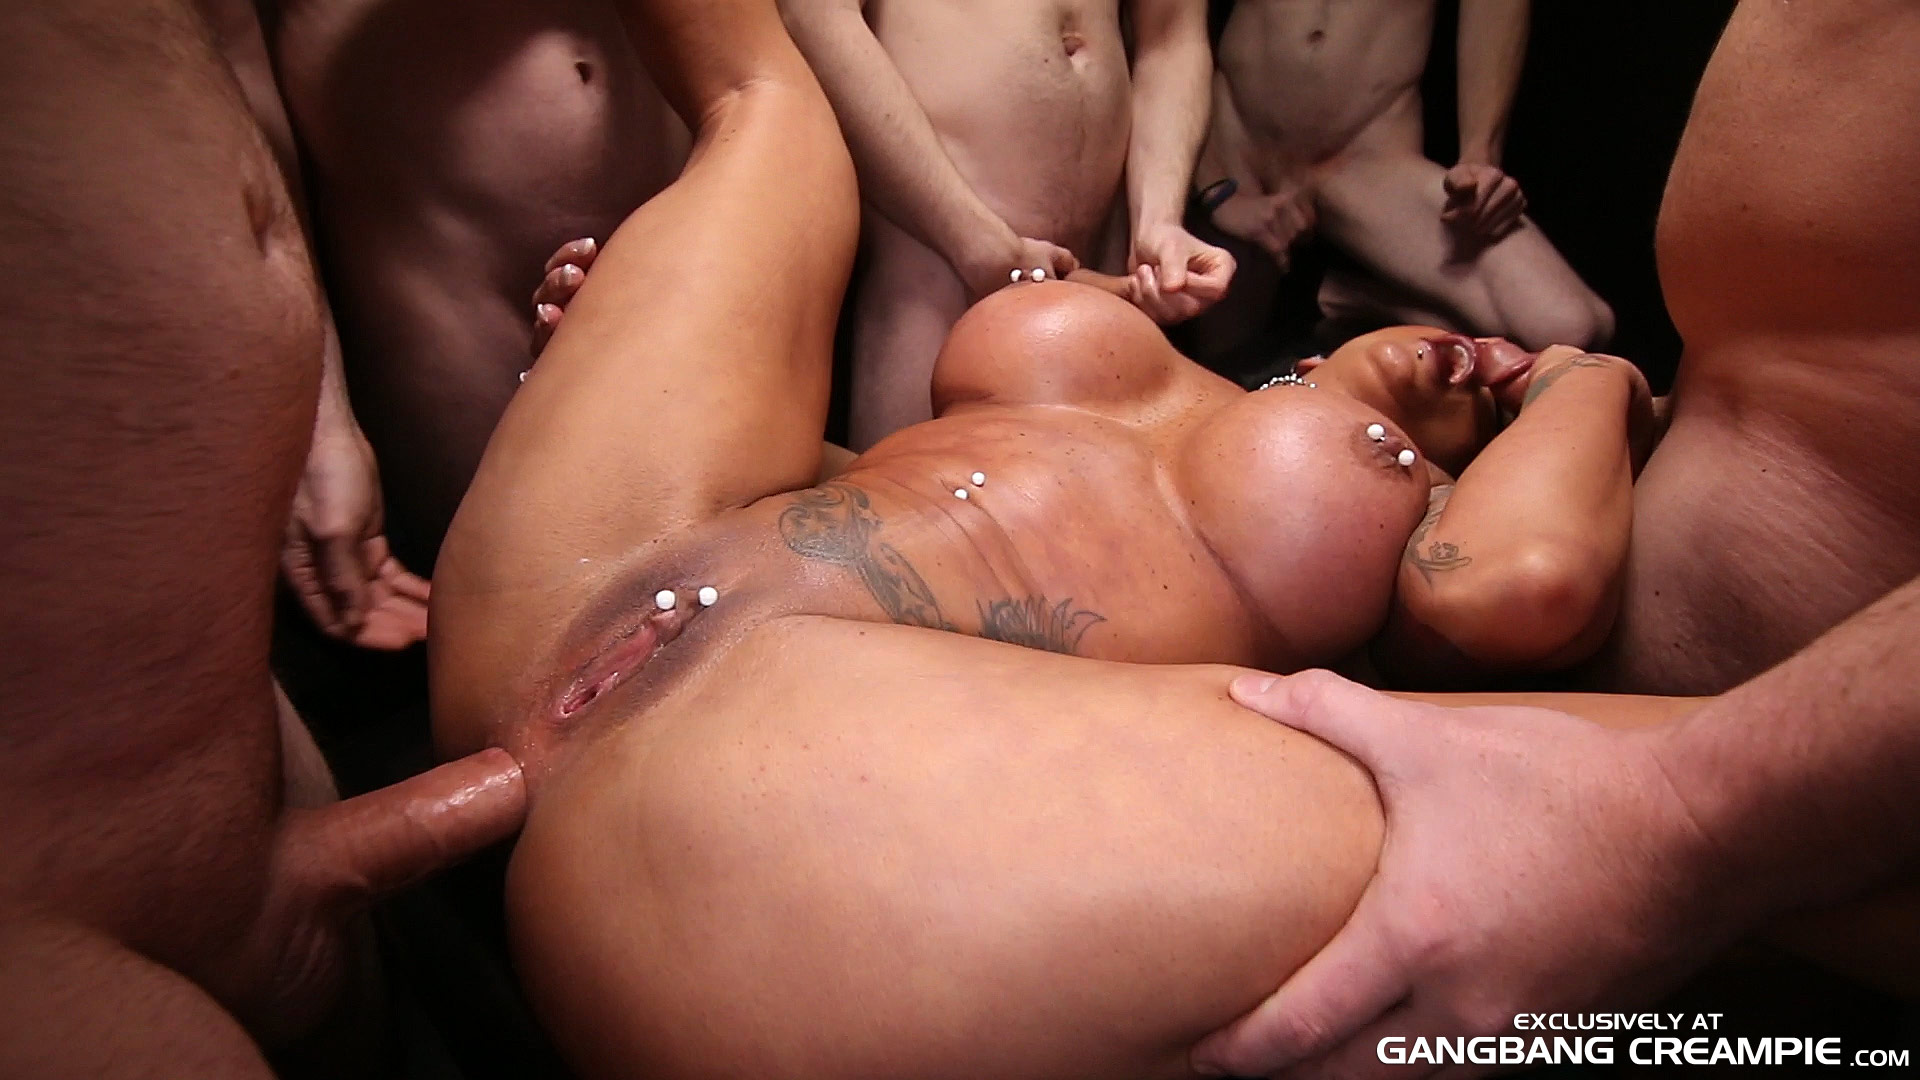 Agree, anal creampie pie gangbang not pleasant